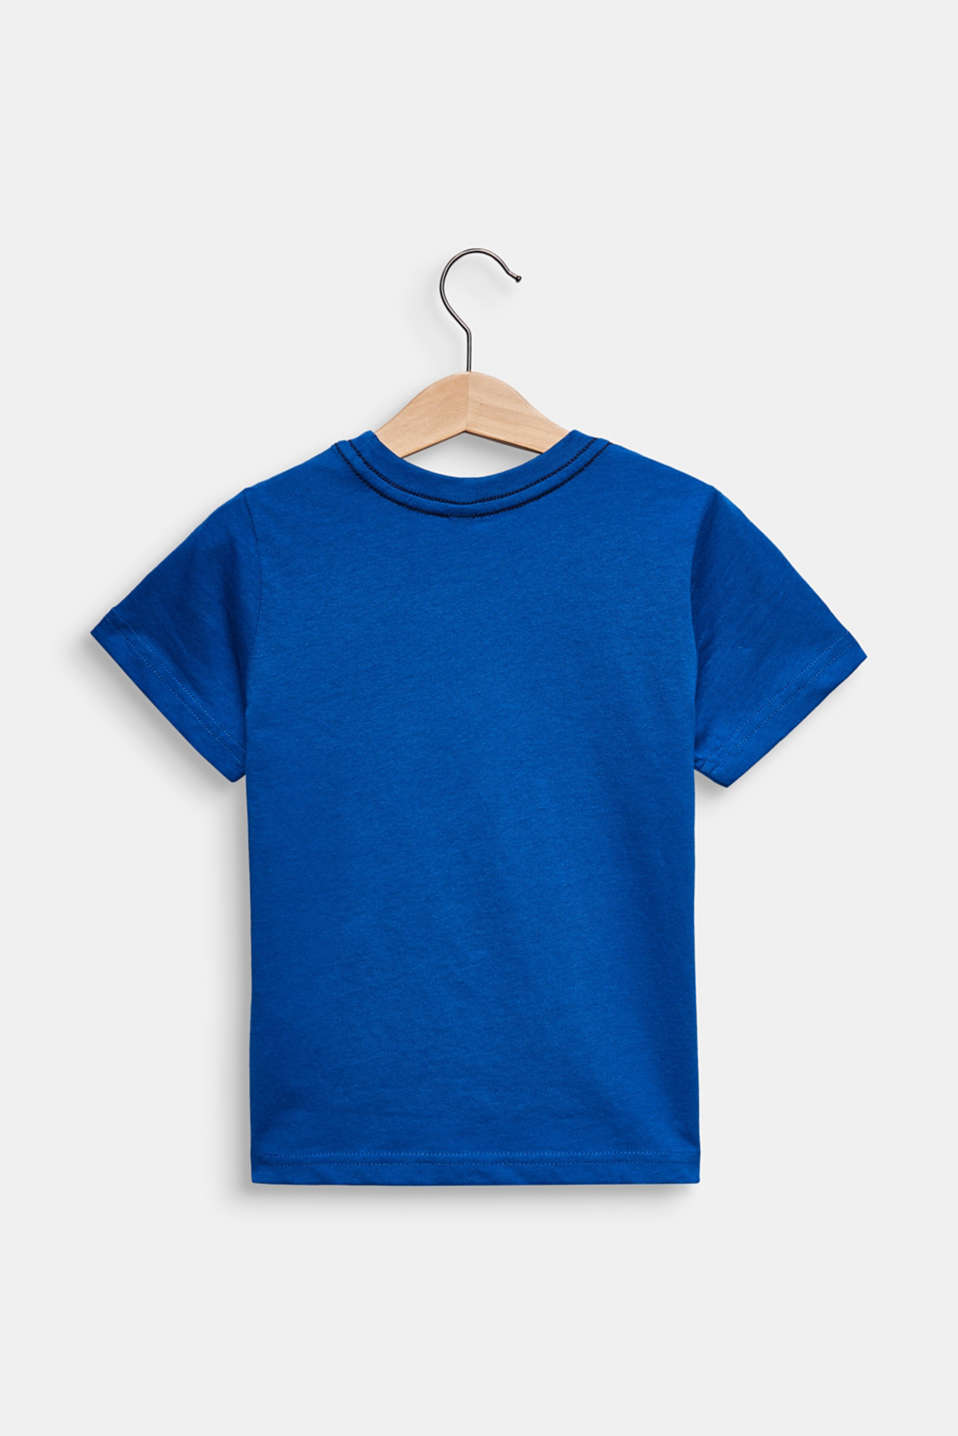 Printed T-shirt, 100% cotton, ELECTRIC BLUE, detail image number 1